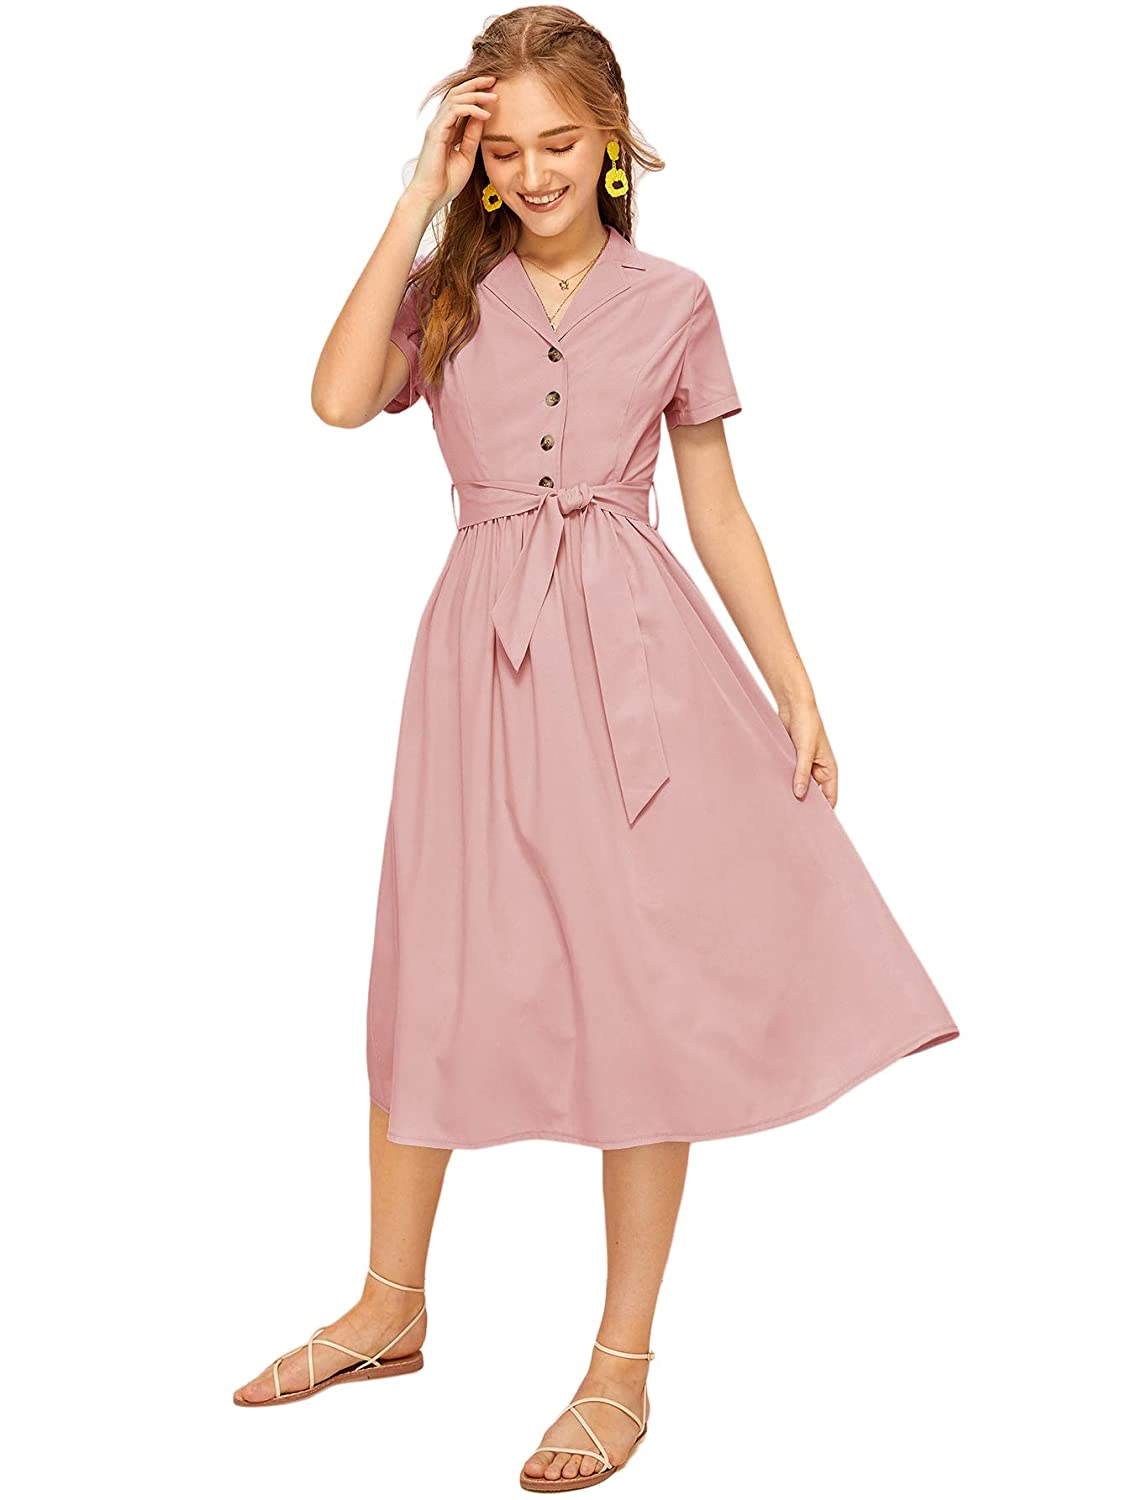 Vintage Shirtwaist Dress History Verdusa Womens Short Sleeve Button Front Belted Solid Midi Dress $26.99 AT vintagedancer.com